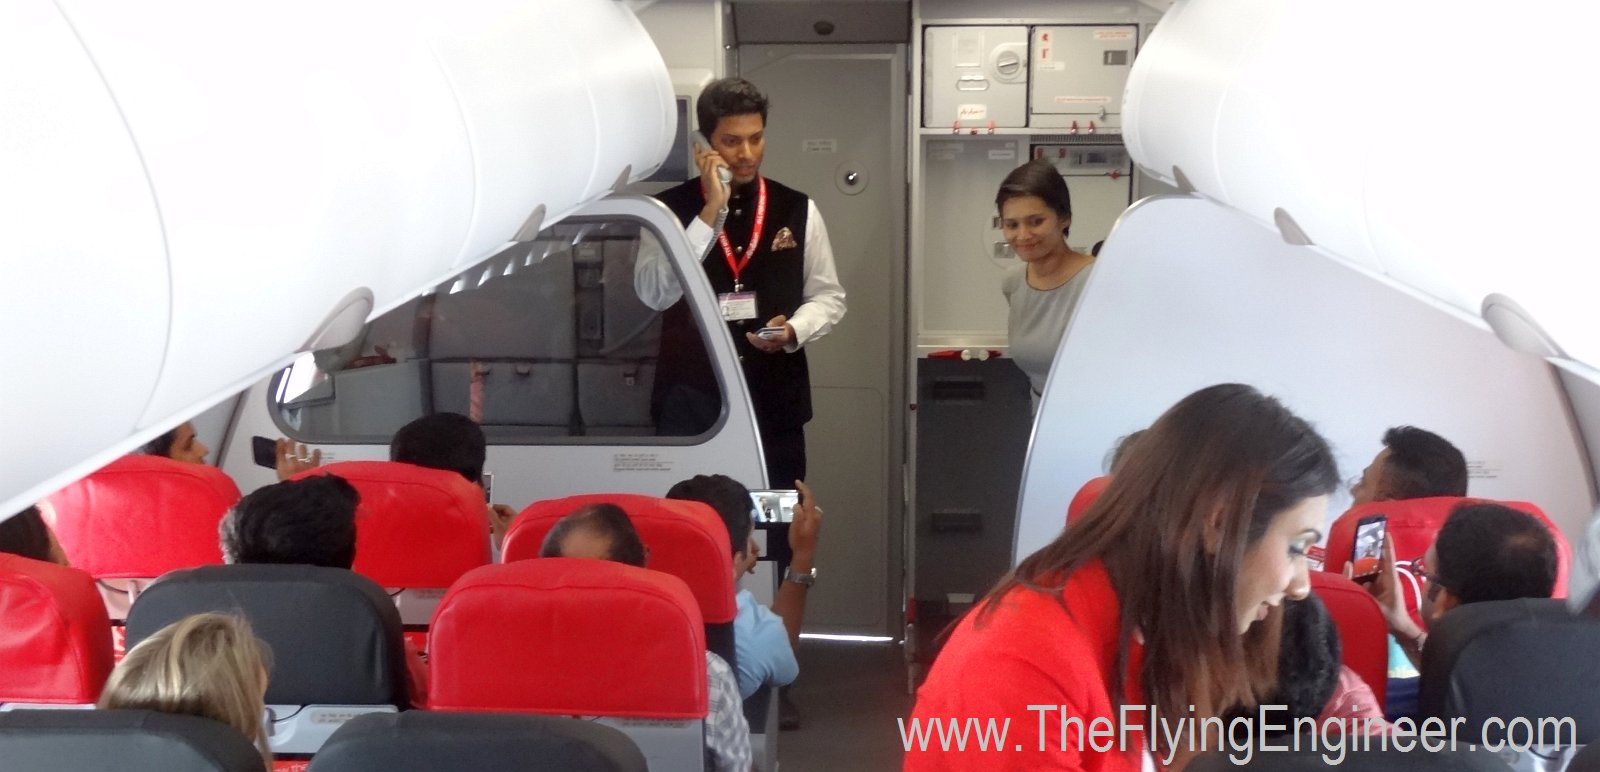 Interlysis Airasia India And Mrithyunjaya Chandilya The Flying Jakarta Singapore Engineer Conducts An Interview Analysis Of Ceo Airline